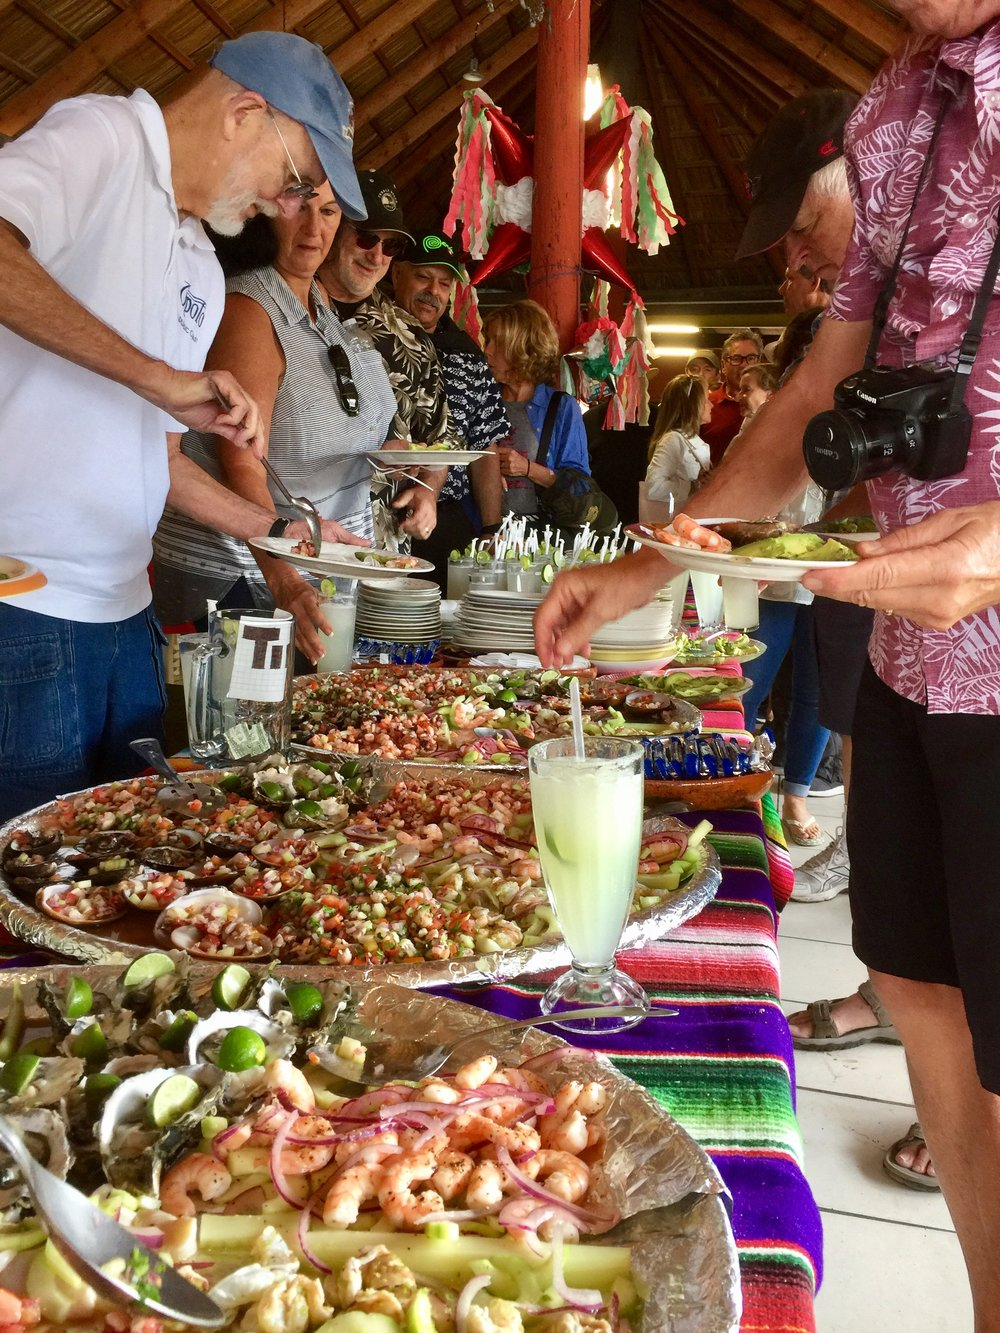 Mariscos and margaritas in Puerto Popotla